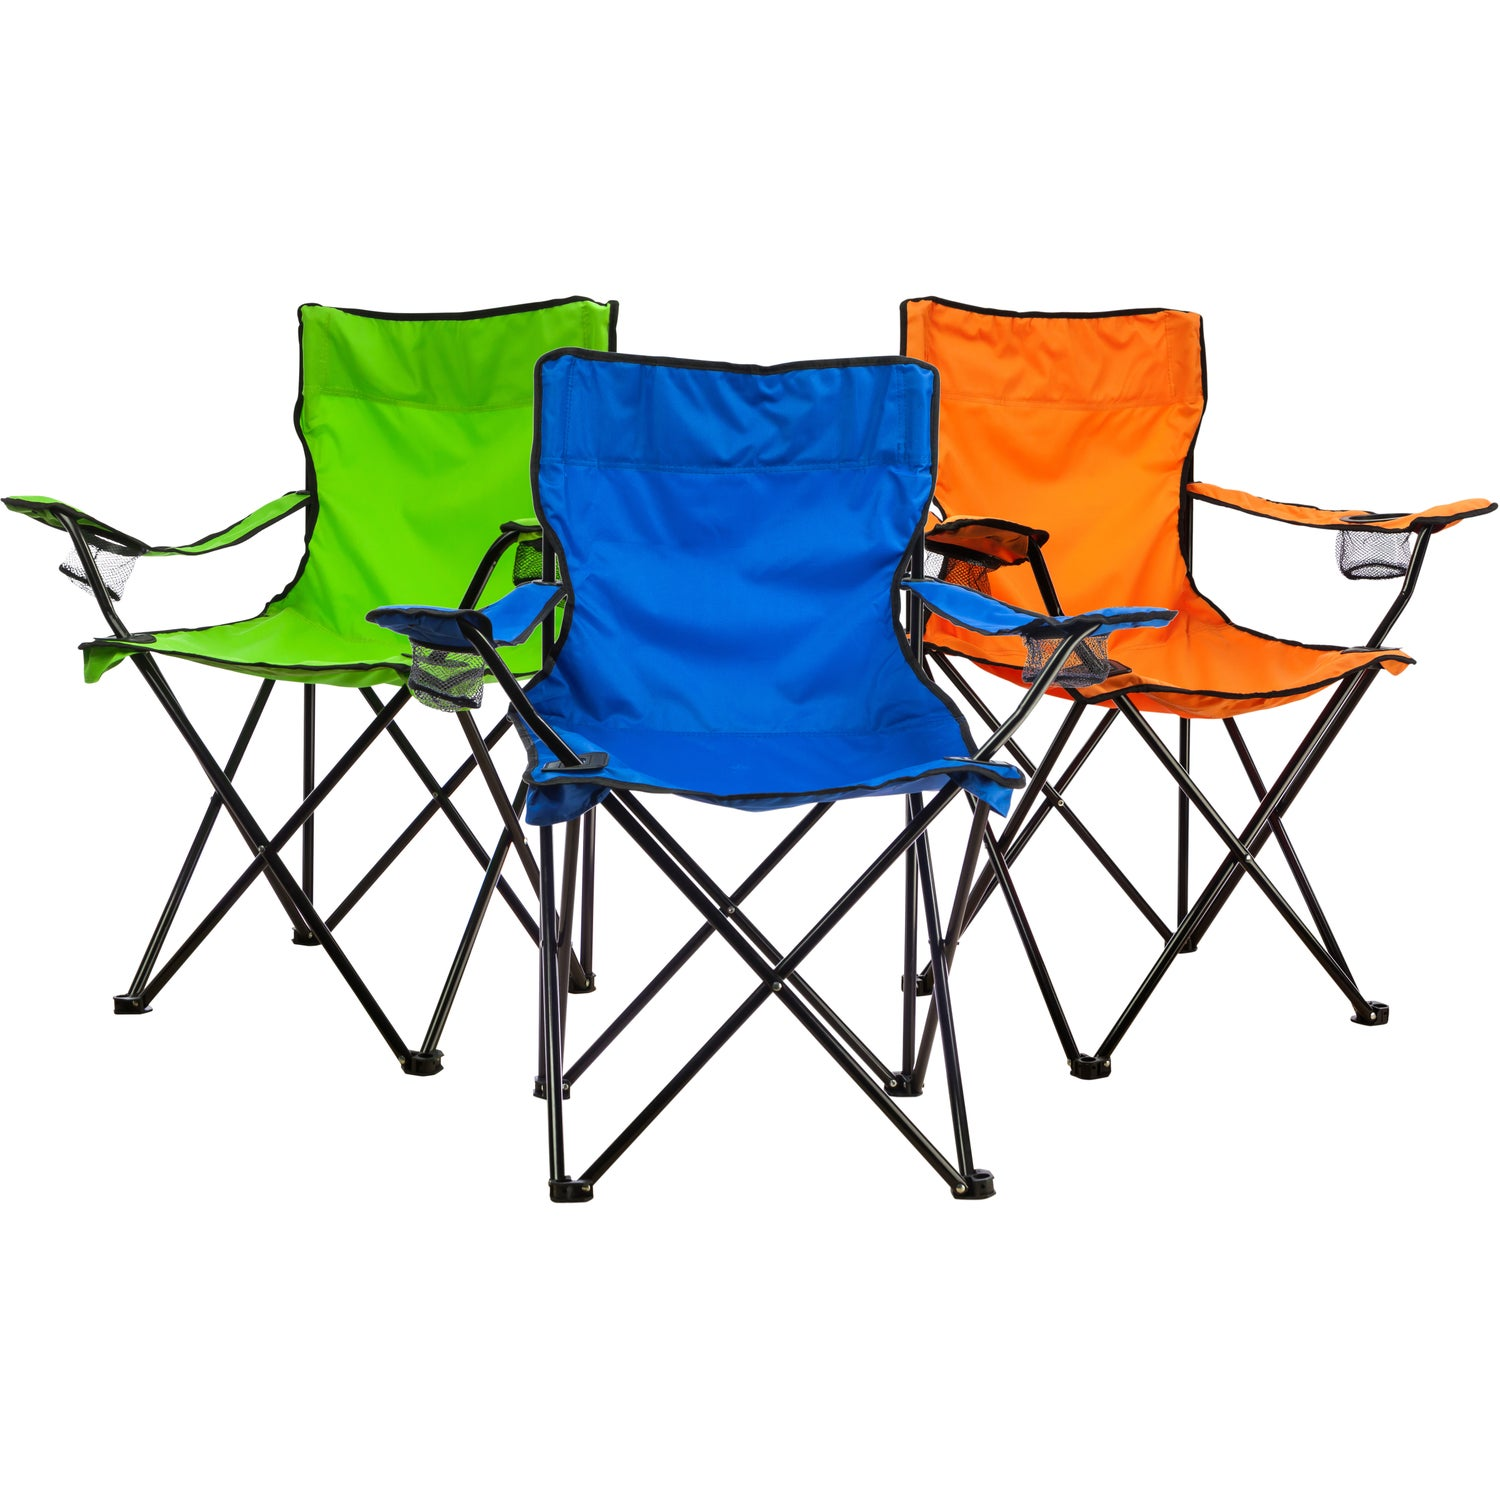 Promotional Folding Chair With Carrying Bags With Custom Logo For $12.74 Ea.